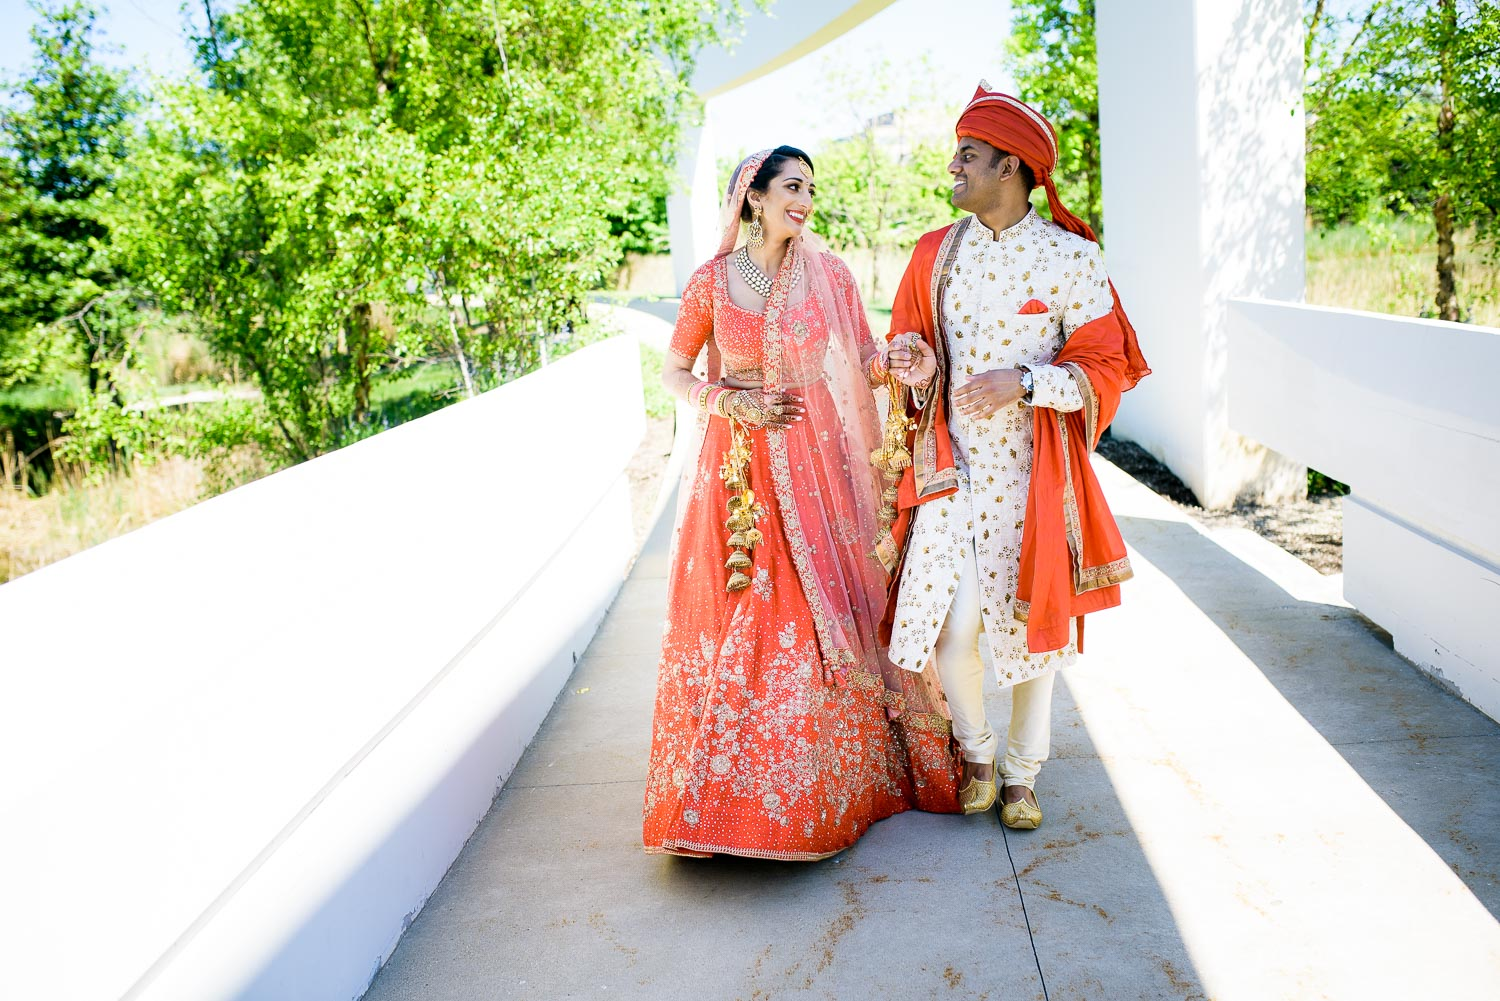 Bride and groom during their schaumburg renaissance indian wedding.